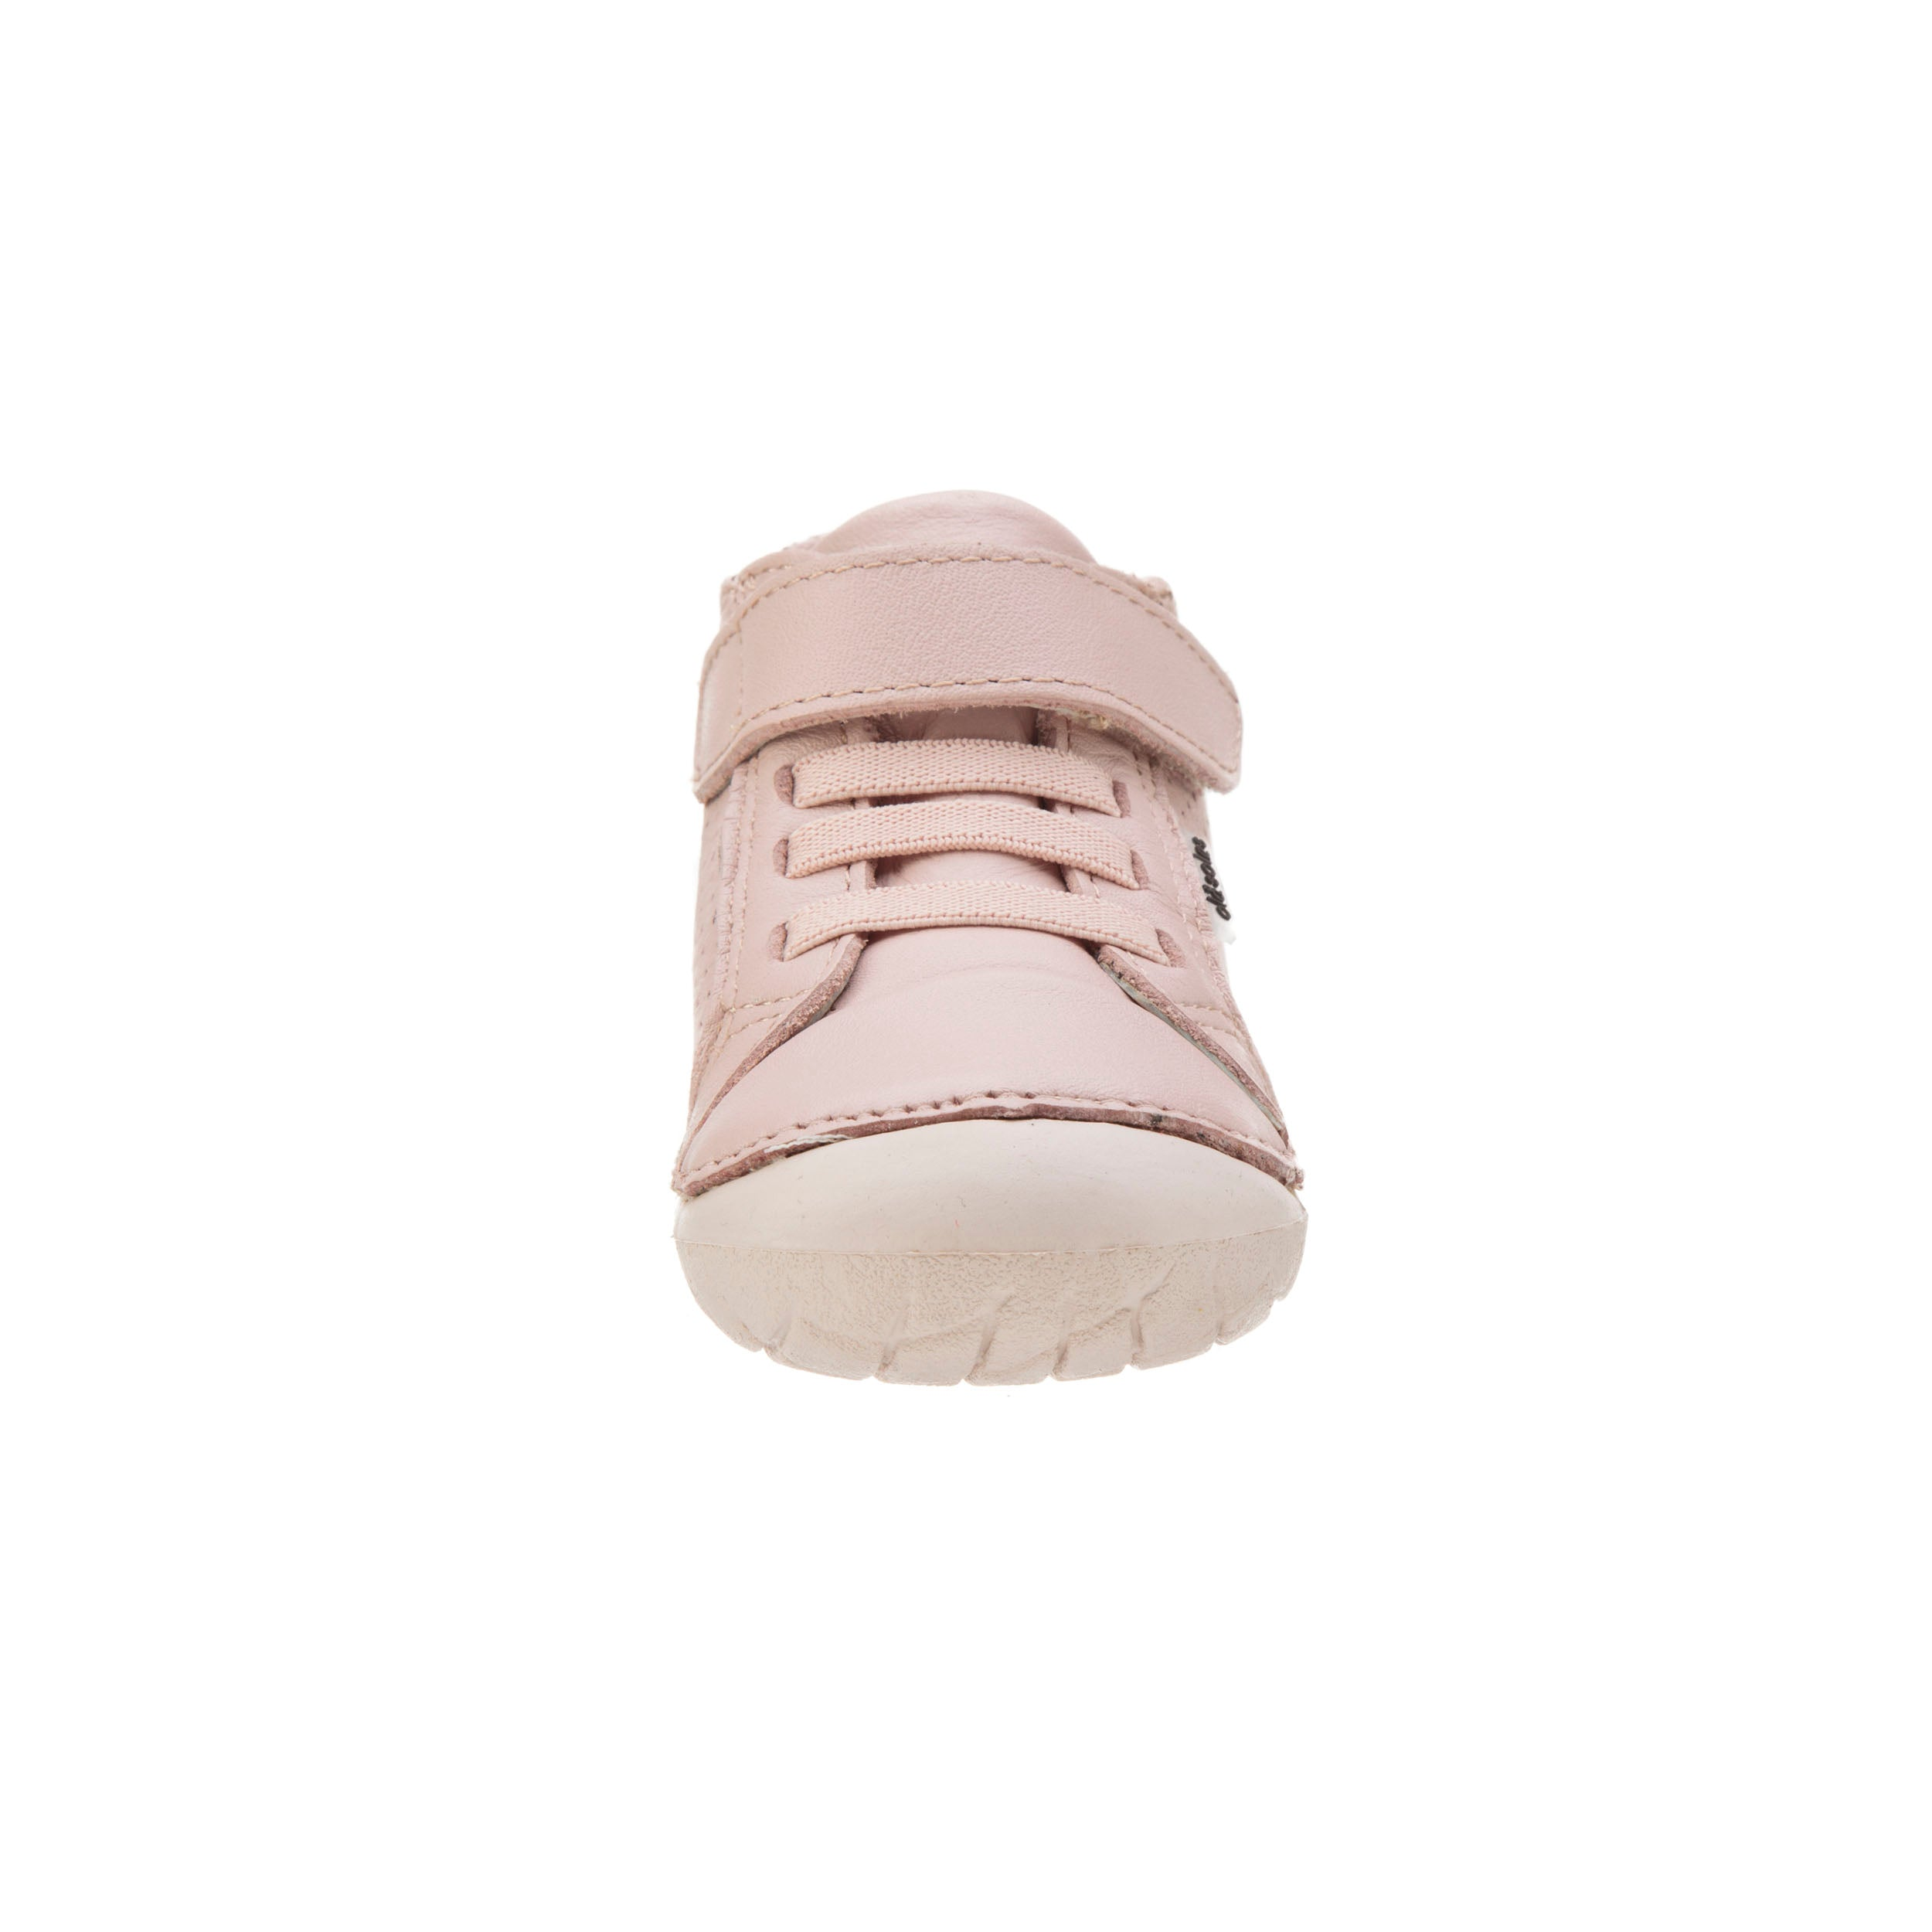 Cheer Pave - Powder Pink